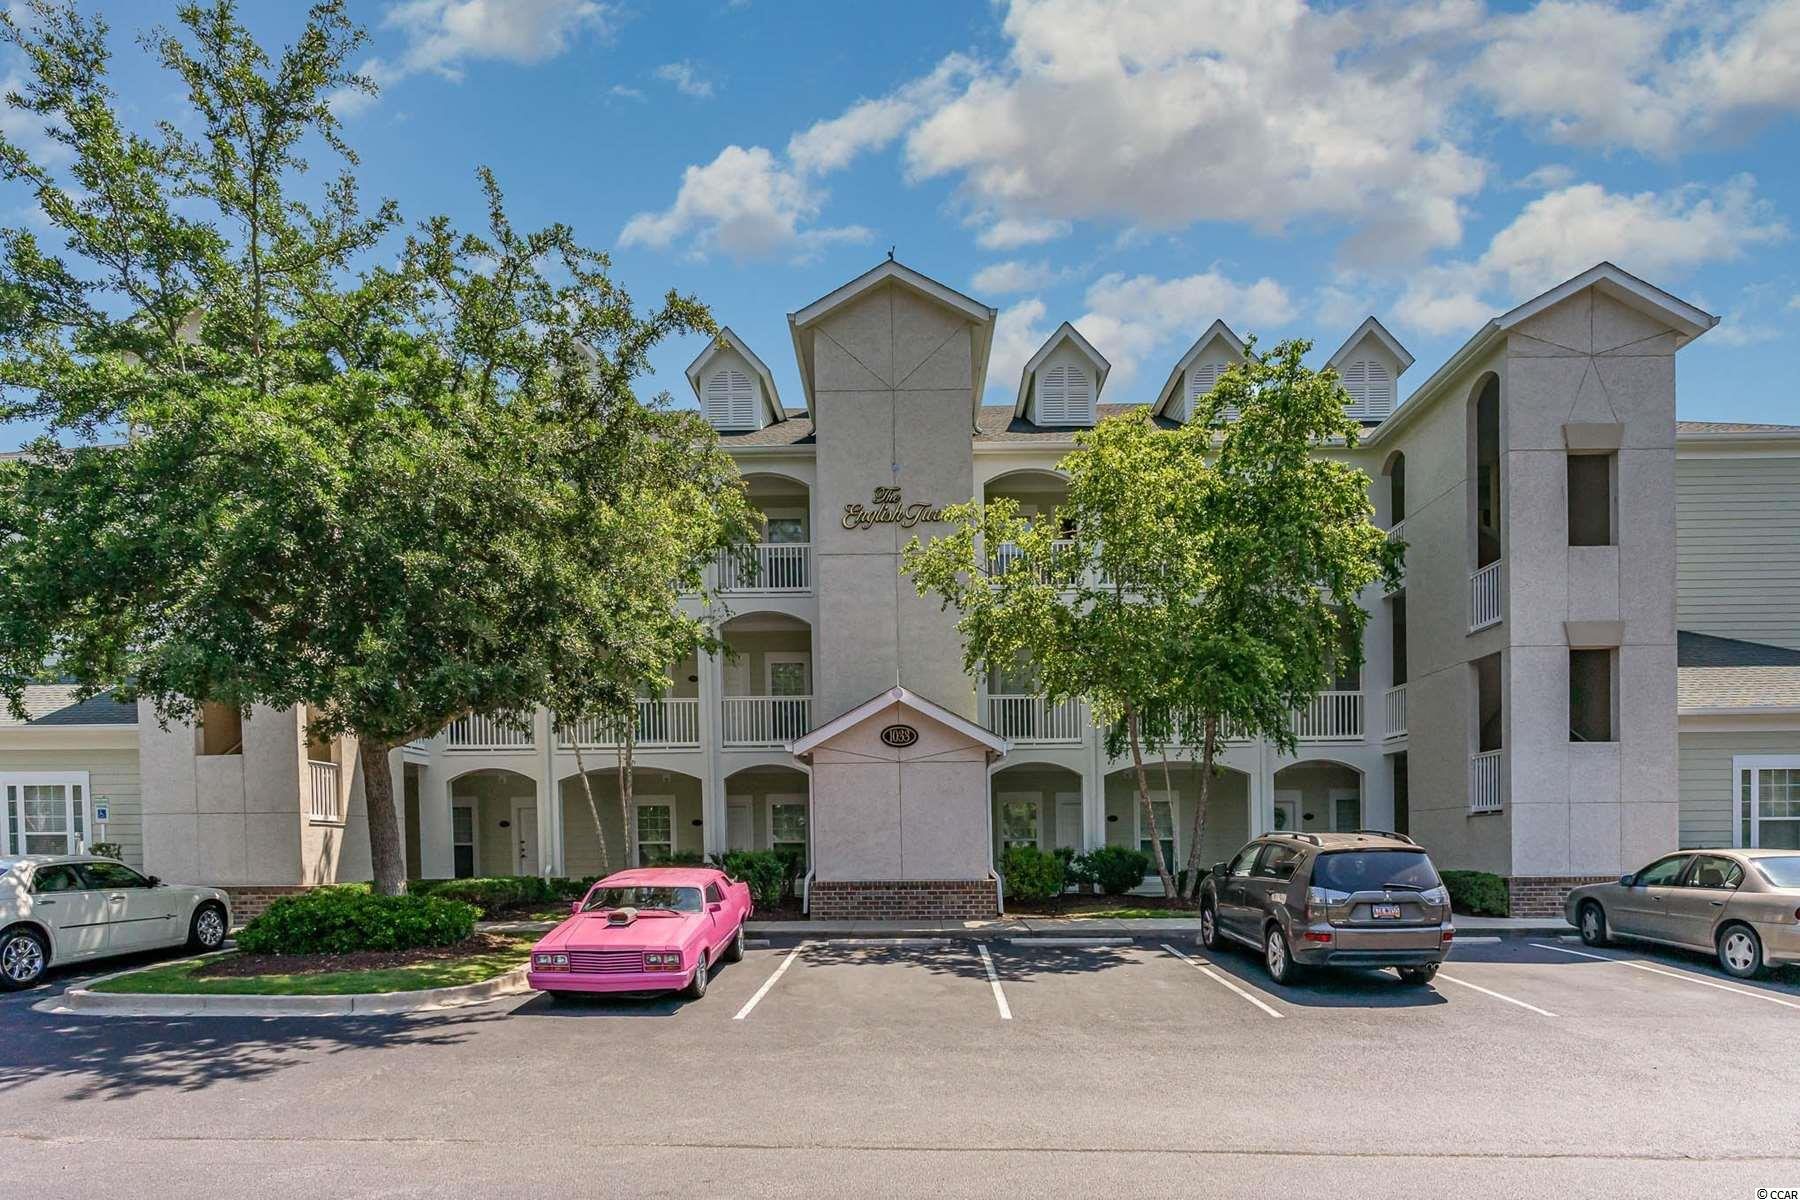 Welcome home to your new furnished 2 bed, 2 bathroom condo!  Located on the 3rd floor in World Tour, this one of the finest golf course communities that Myrtle Beach has to offer. Fall in love with the private balcony and enjoy the  relaxing golf course views. Whether you are coming to visit the beach for a few days, looking for an investment property for some extra cash, or you come for vacation and never want to leave, this fully furnished unit is perfect for you! The kitchen features high ceilings, beautiful white cabinetry, white appliances, and granite countertops. World Tour is conveniently is located close to everything! Broadway At the Beach, Tanger Outlet, Market Common, Coastal Grand Mall has endless choices or food and entertainment. Be sure to schedule your ShowingTime appointment today! This one won't last long!